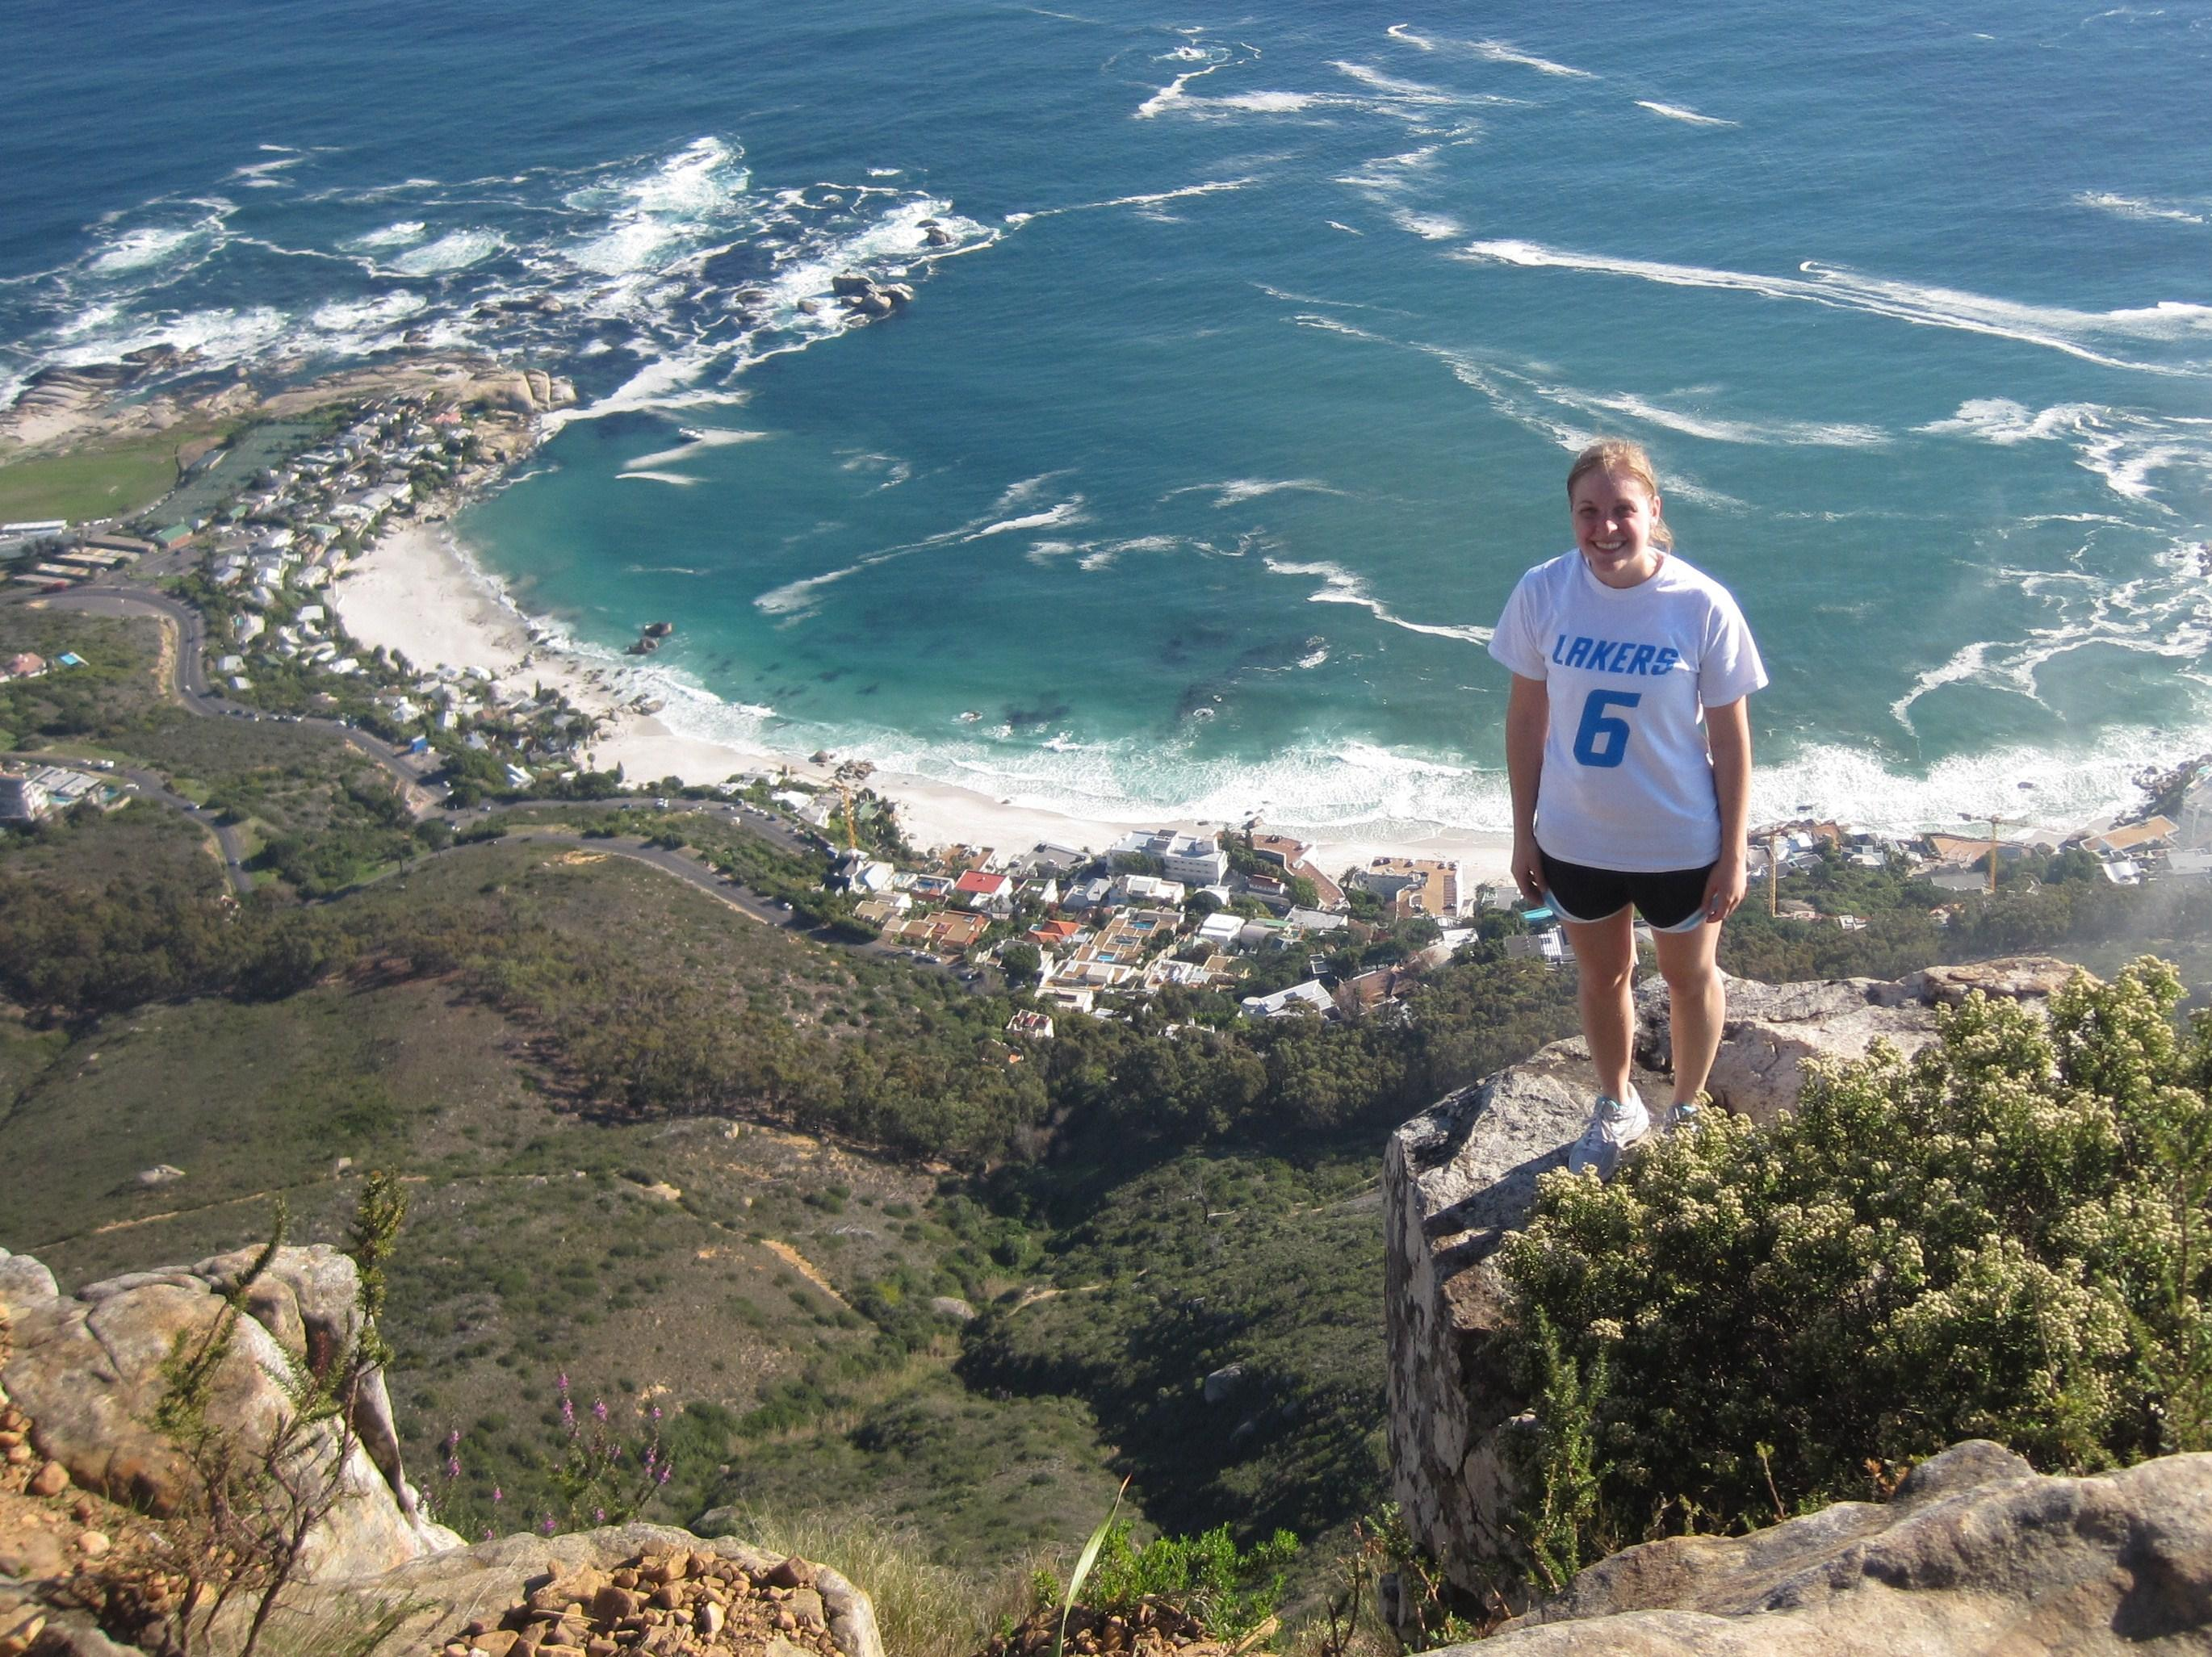 Mica Blauw hiking Lions Head in Cape Town, South Africa.